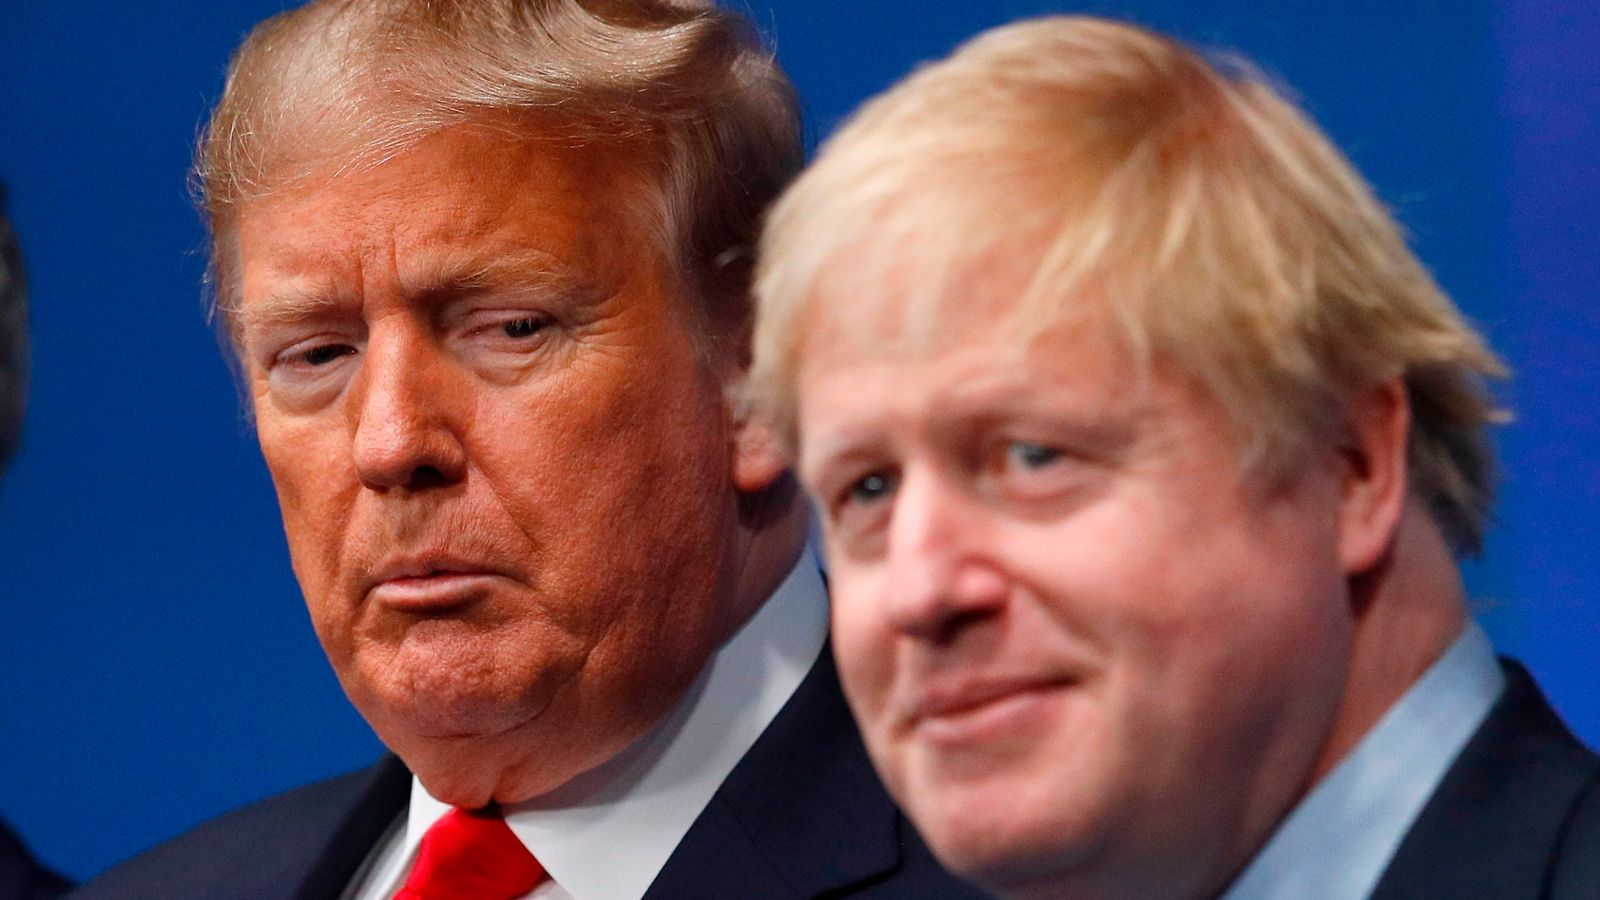 Donald Trump 'apoplectic' over Boris Johnson giving green light to Huawei -- A second official confirmed that the Trump-Johnson call was 'very difficult'